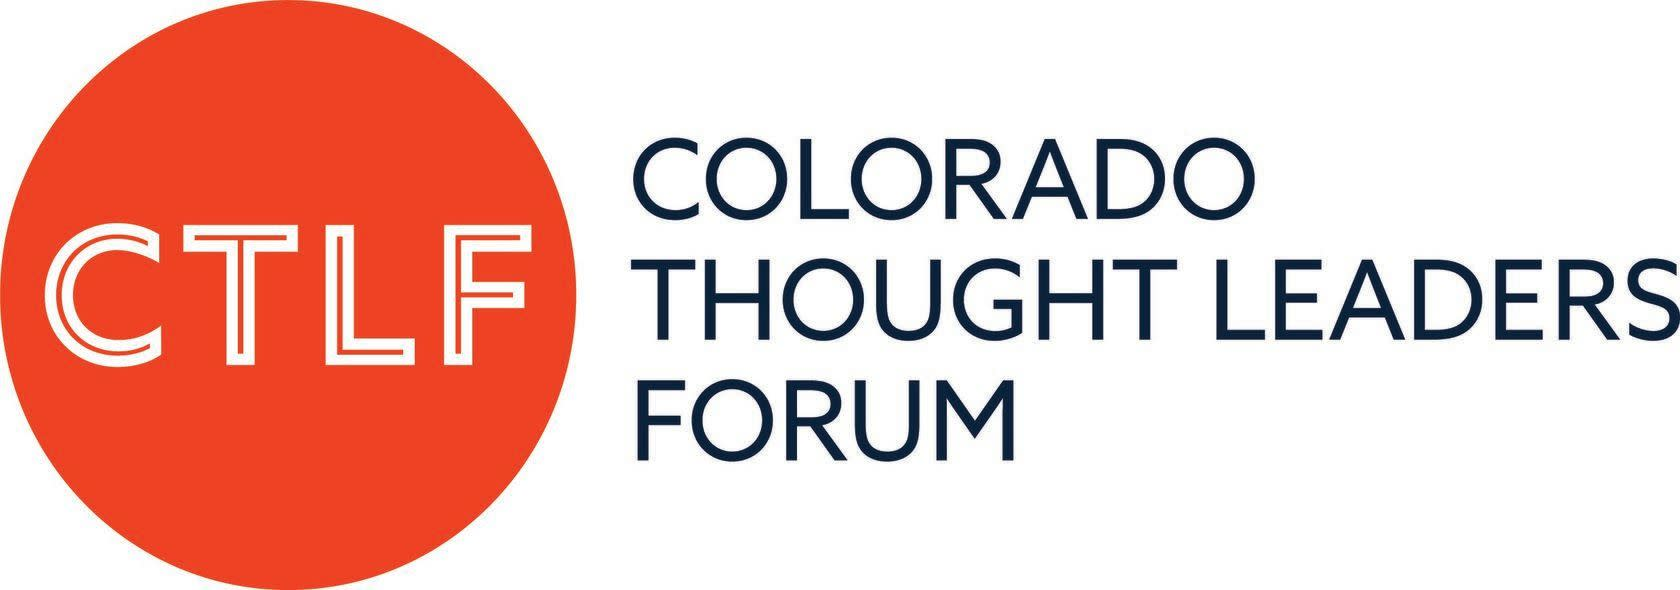 Colorado Thought Leaders Forum - CTLF